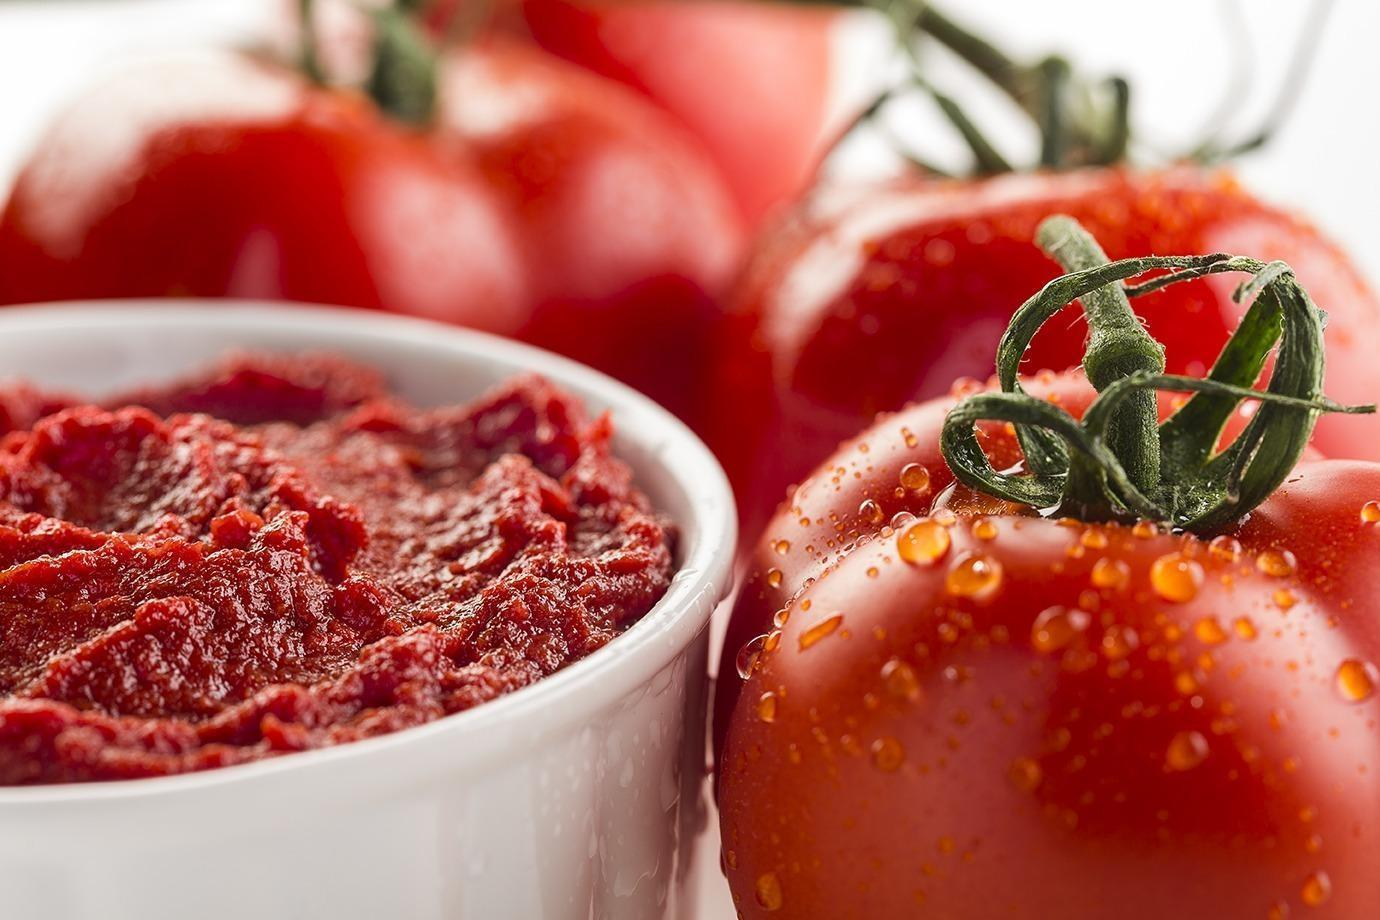 tomato paste brix 36 38 uses and advantages